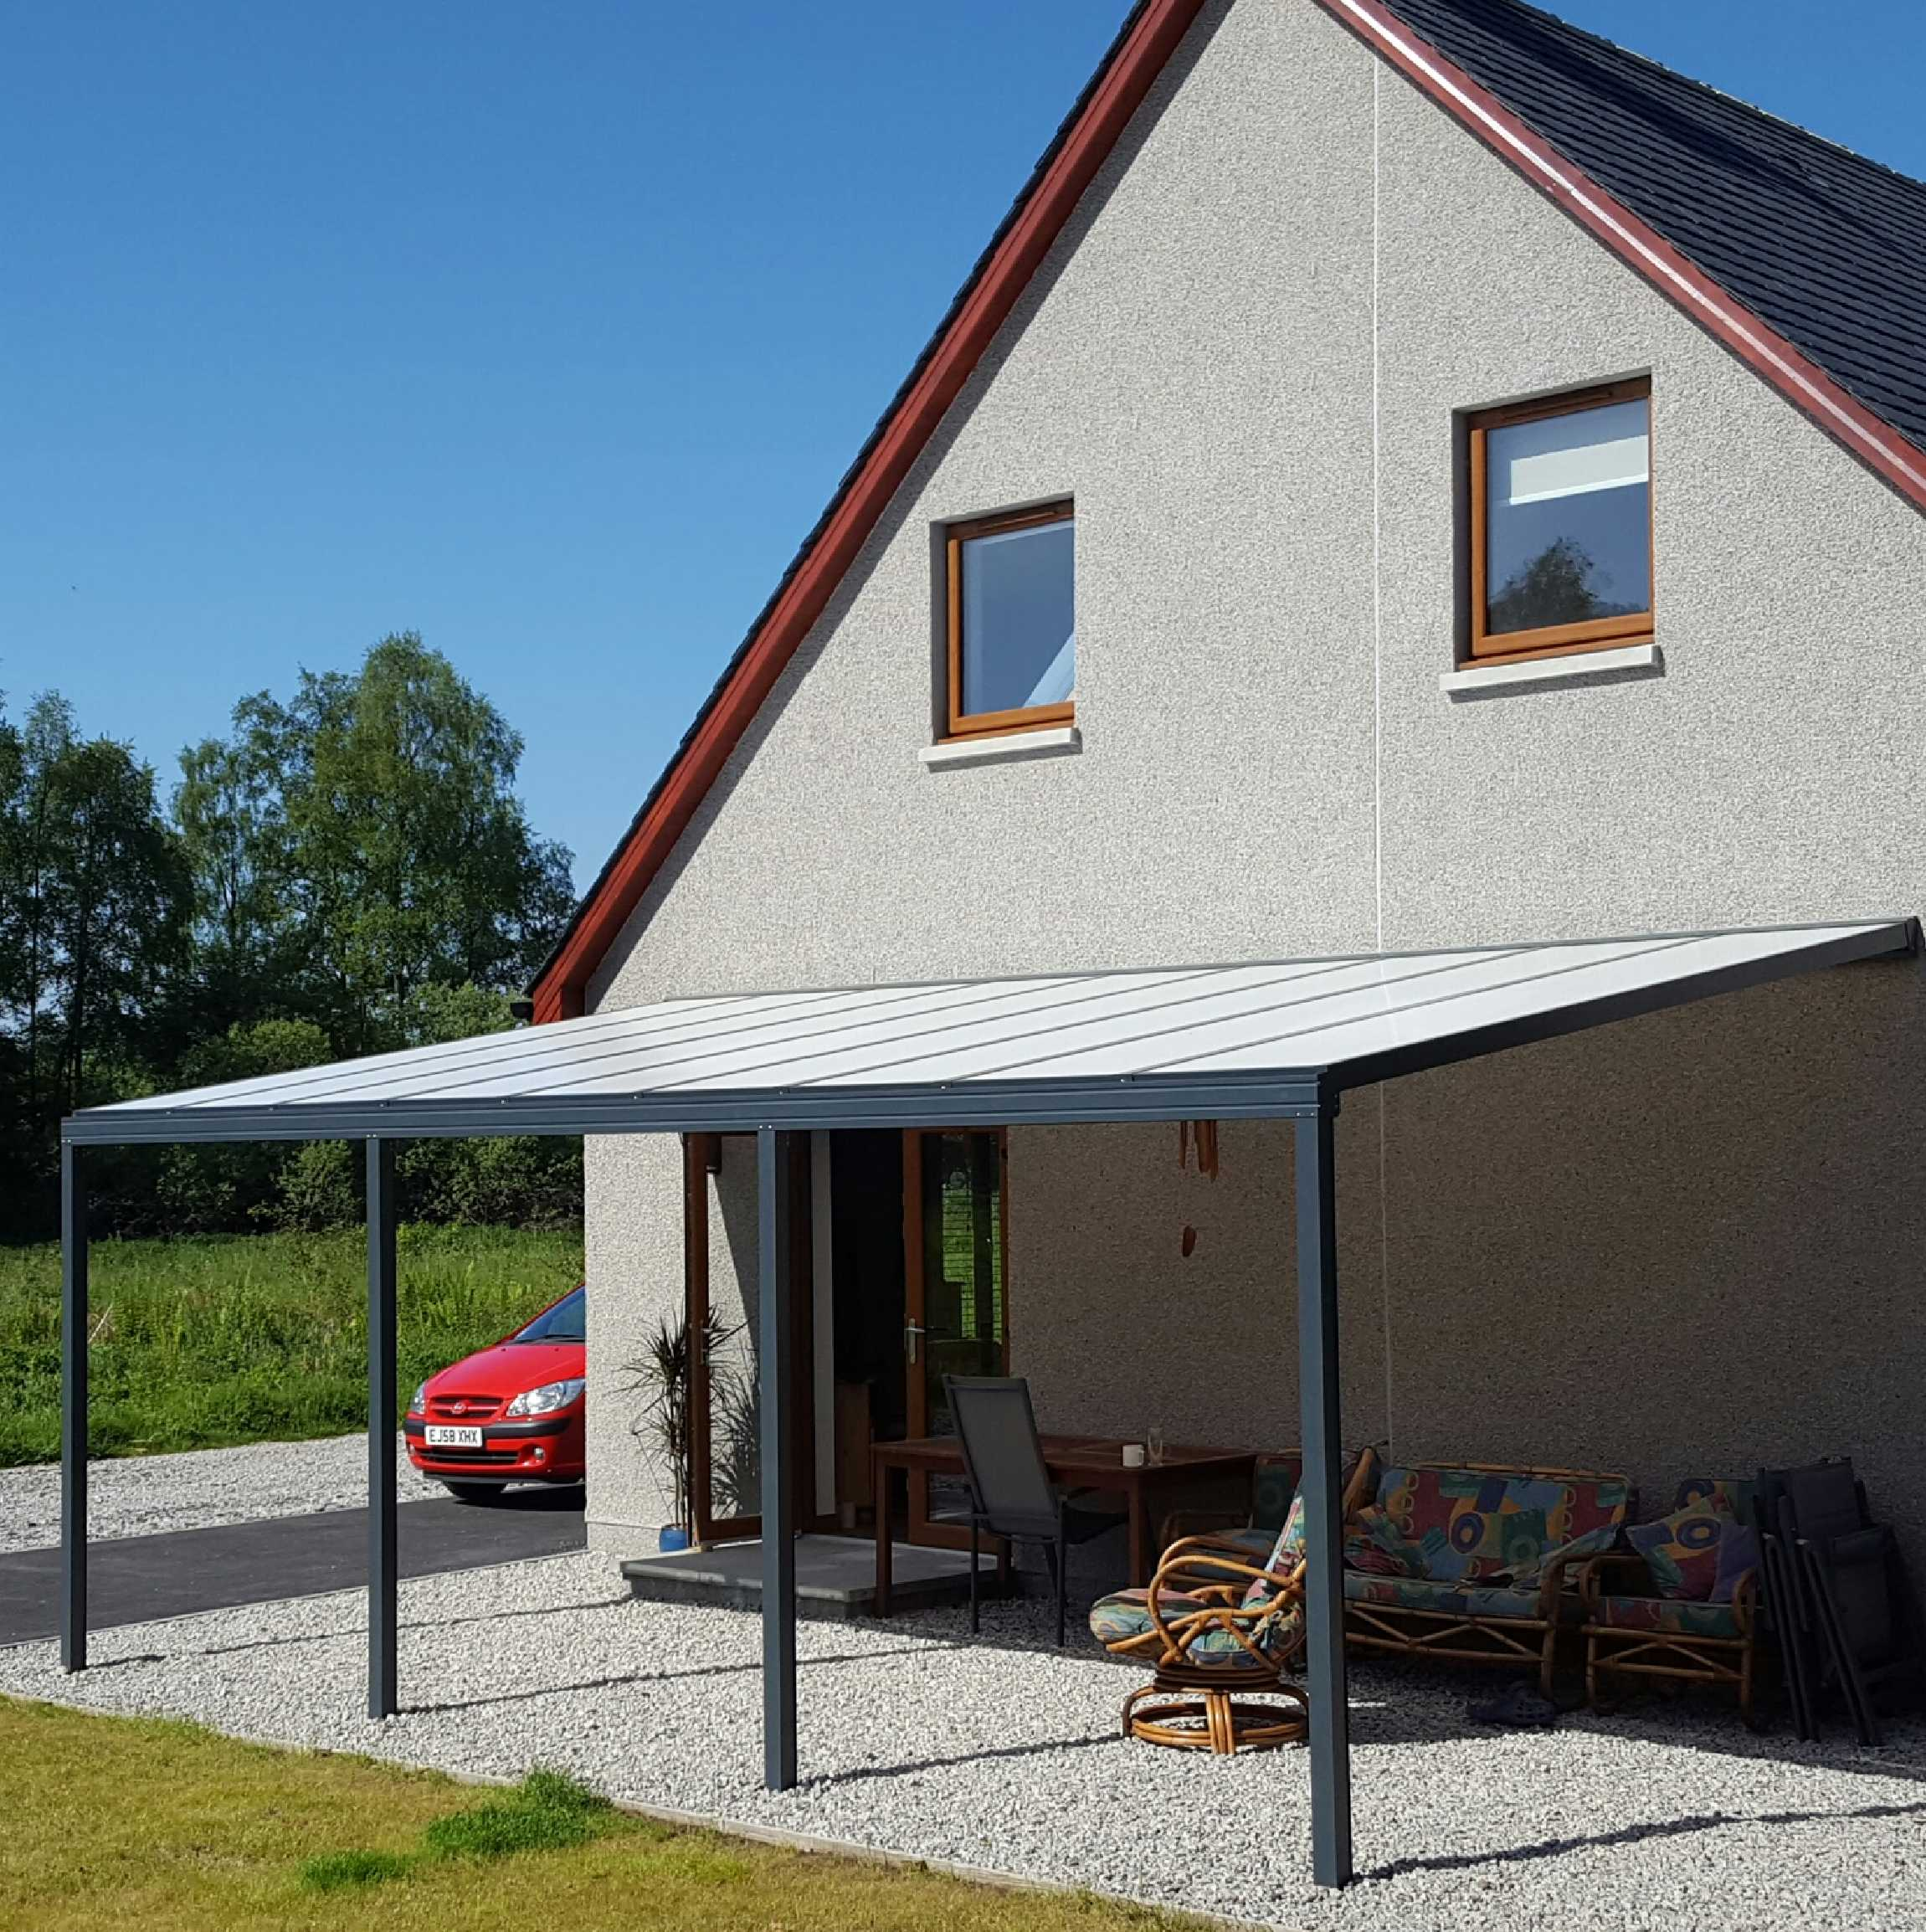 Great selection of Omega Smart Lean-To Canopy, Anthracite Grey, 16mm Polycarbonate Glazing - 6.0m (W) x 3.0m (P), (3) Supporting Posts